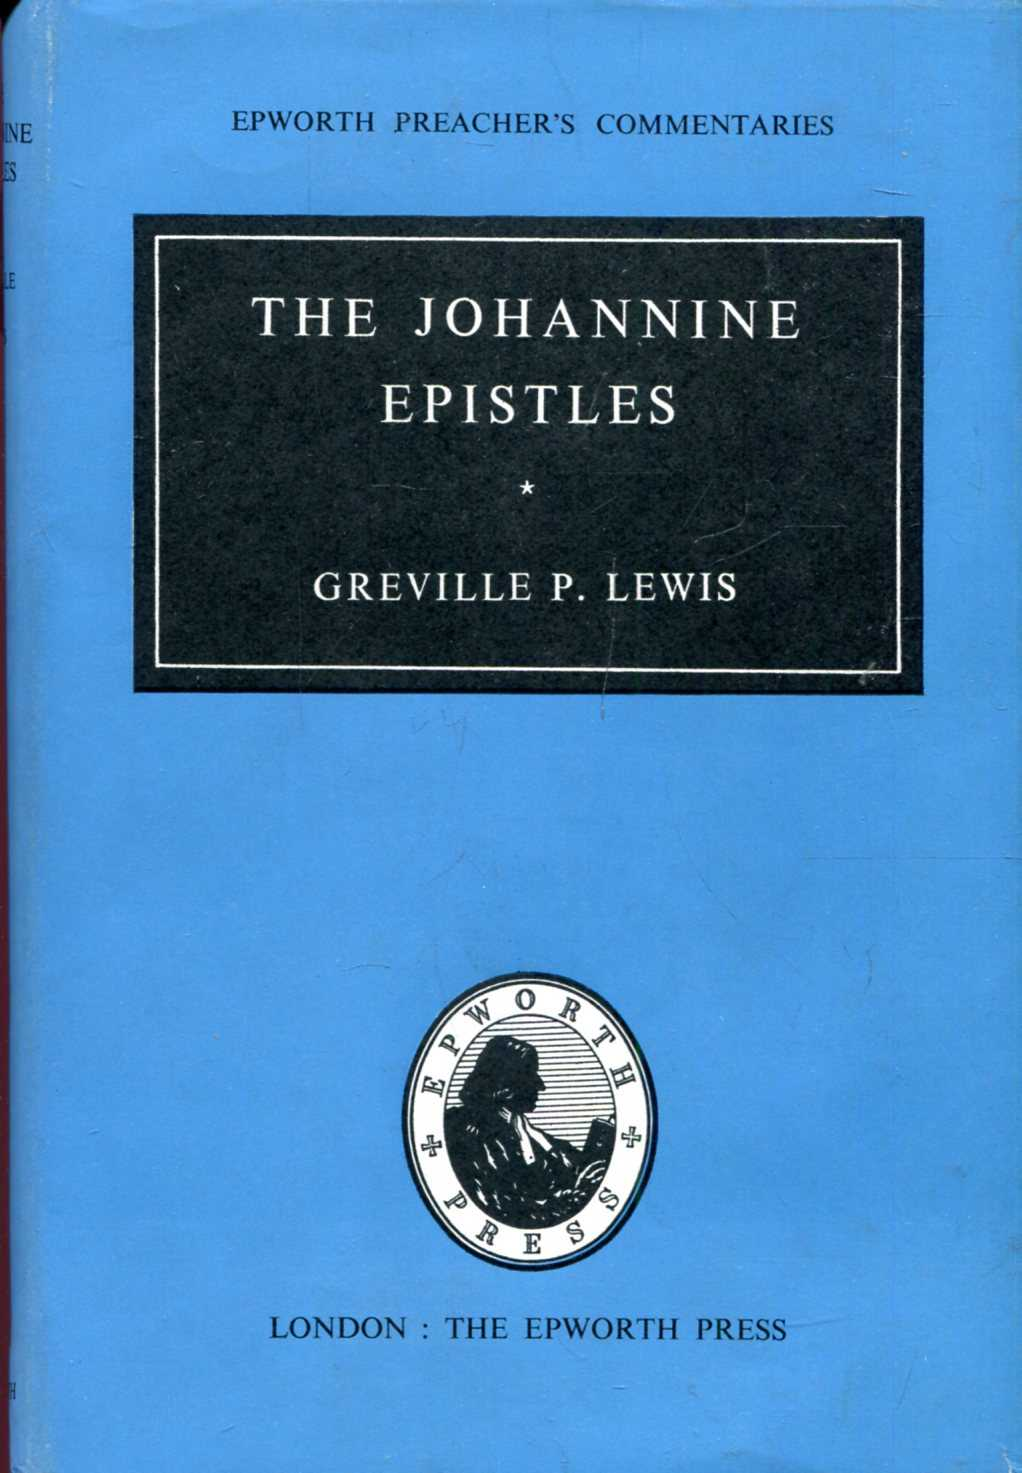 Image for Epworth Preacher's Commentaries : The Johannine Epistles